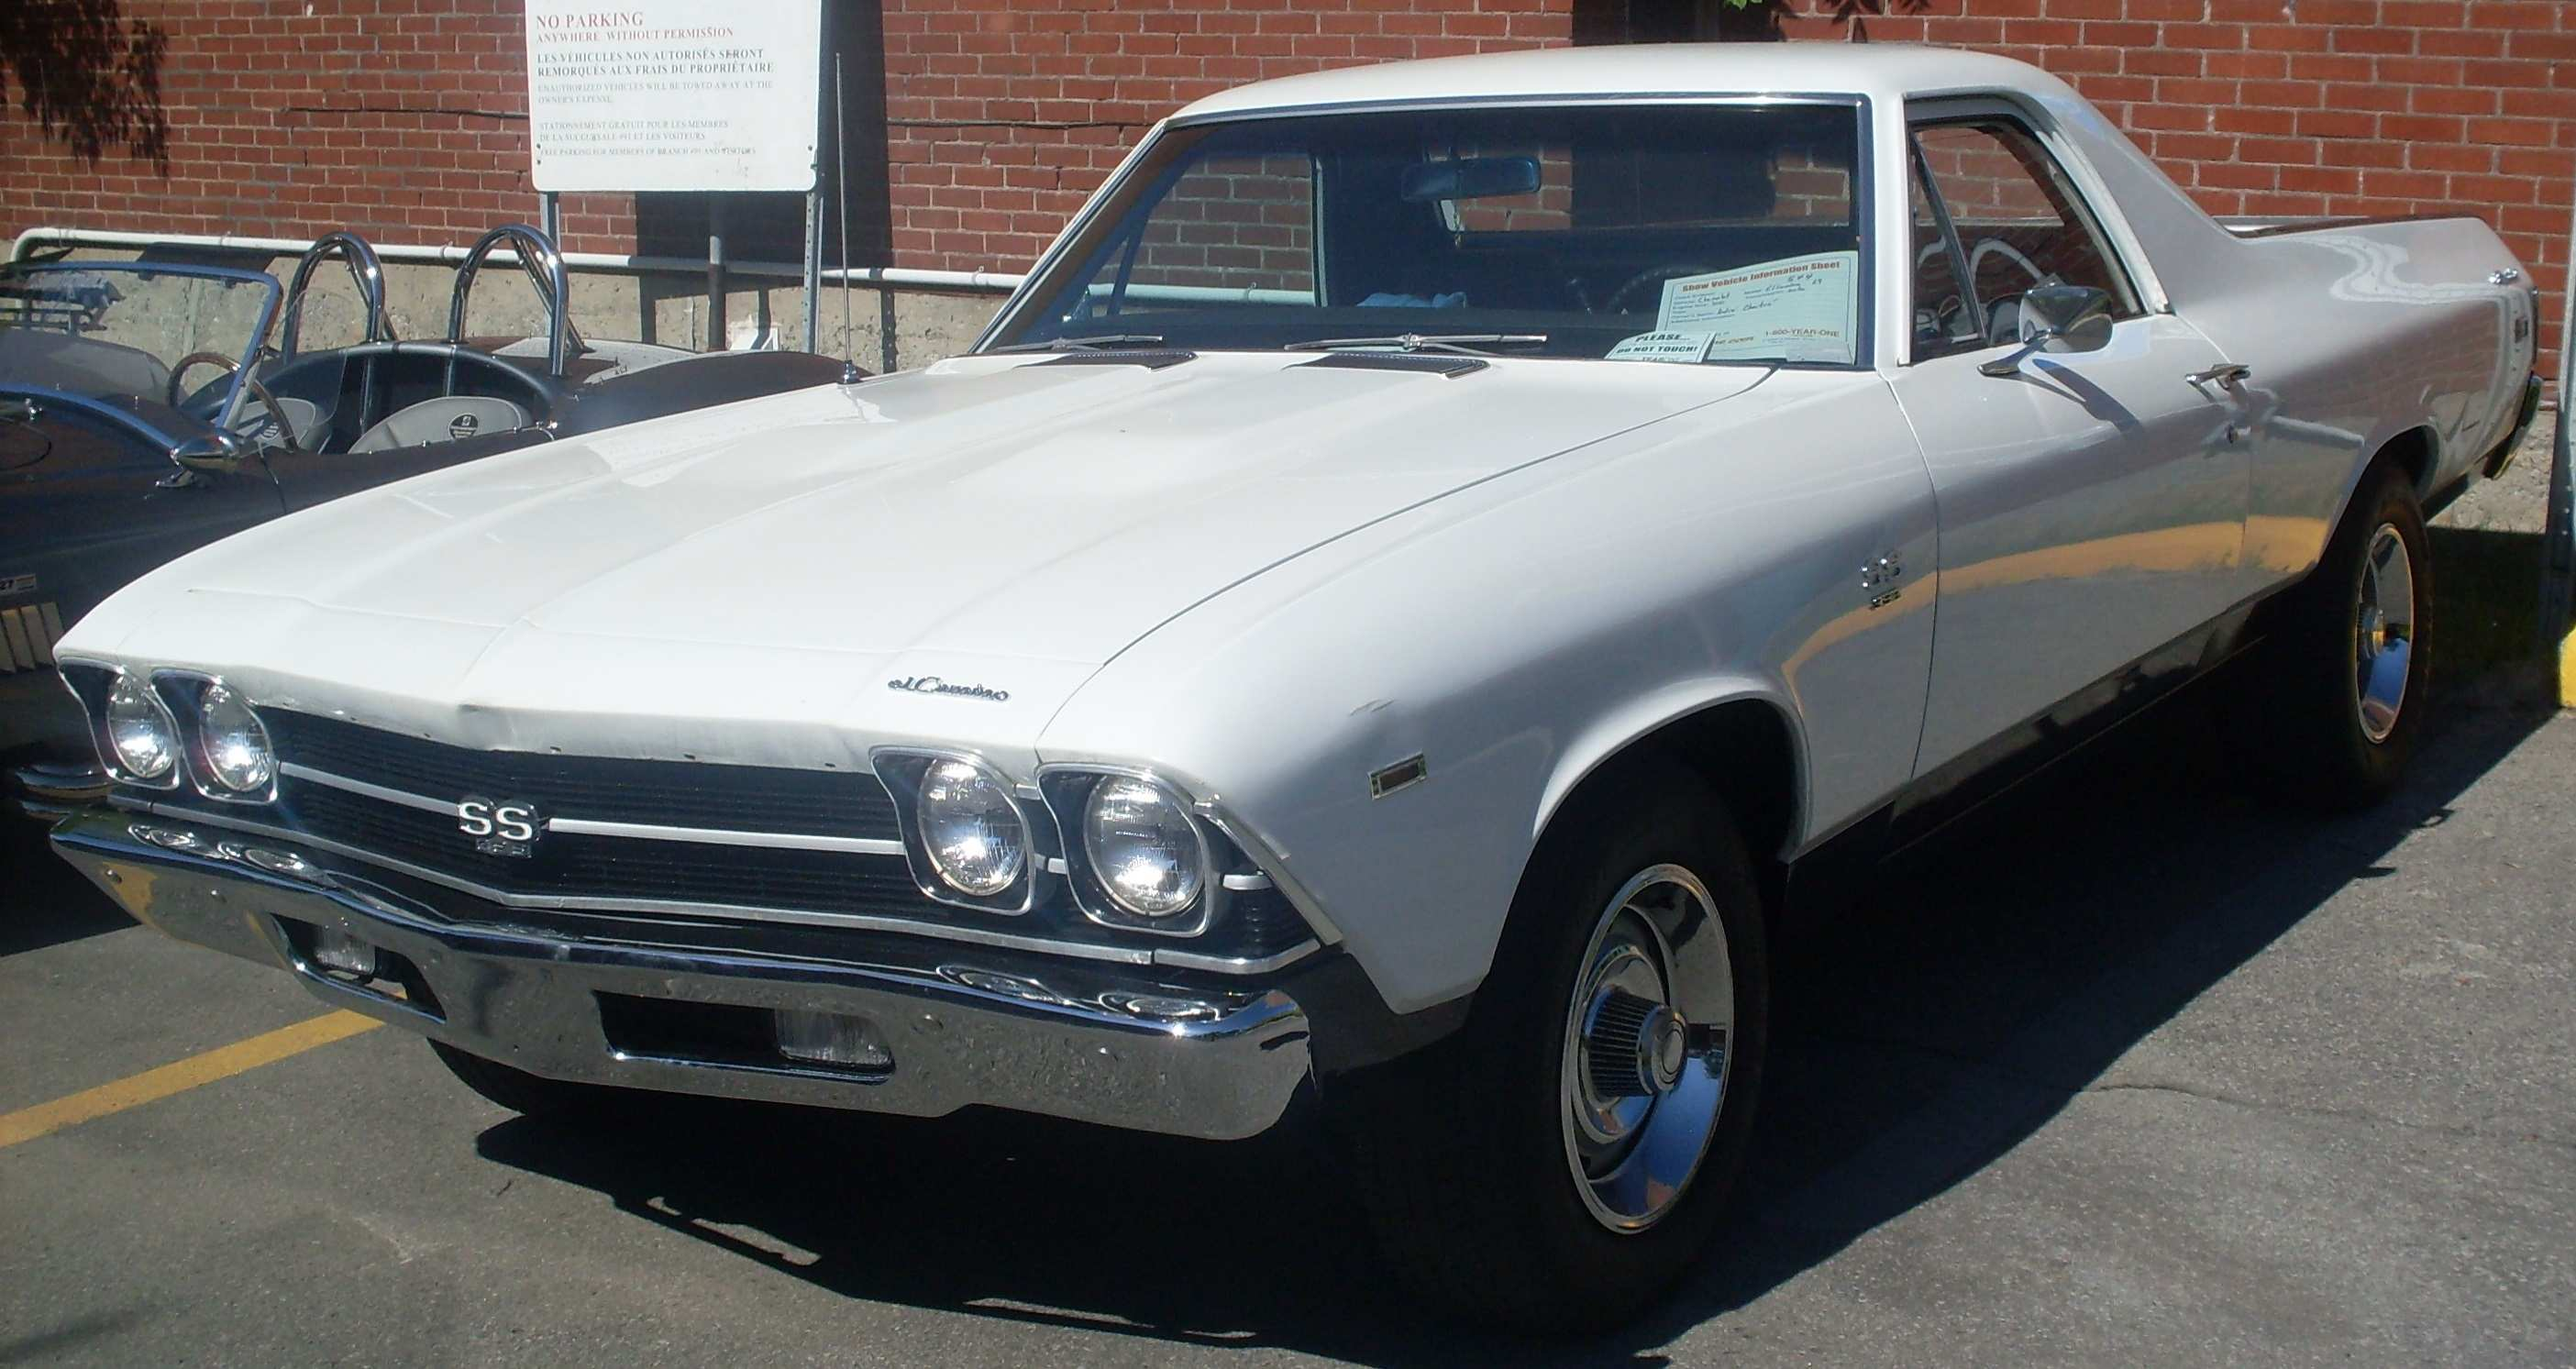 40 Concept of Pictures Of The New Chevy El Camino Release with Pictures Of The New Chevy El Camino